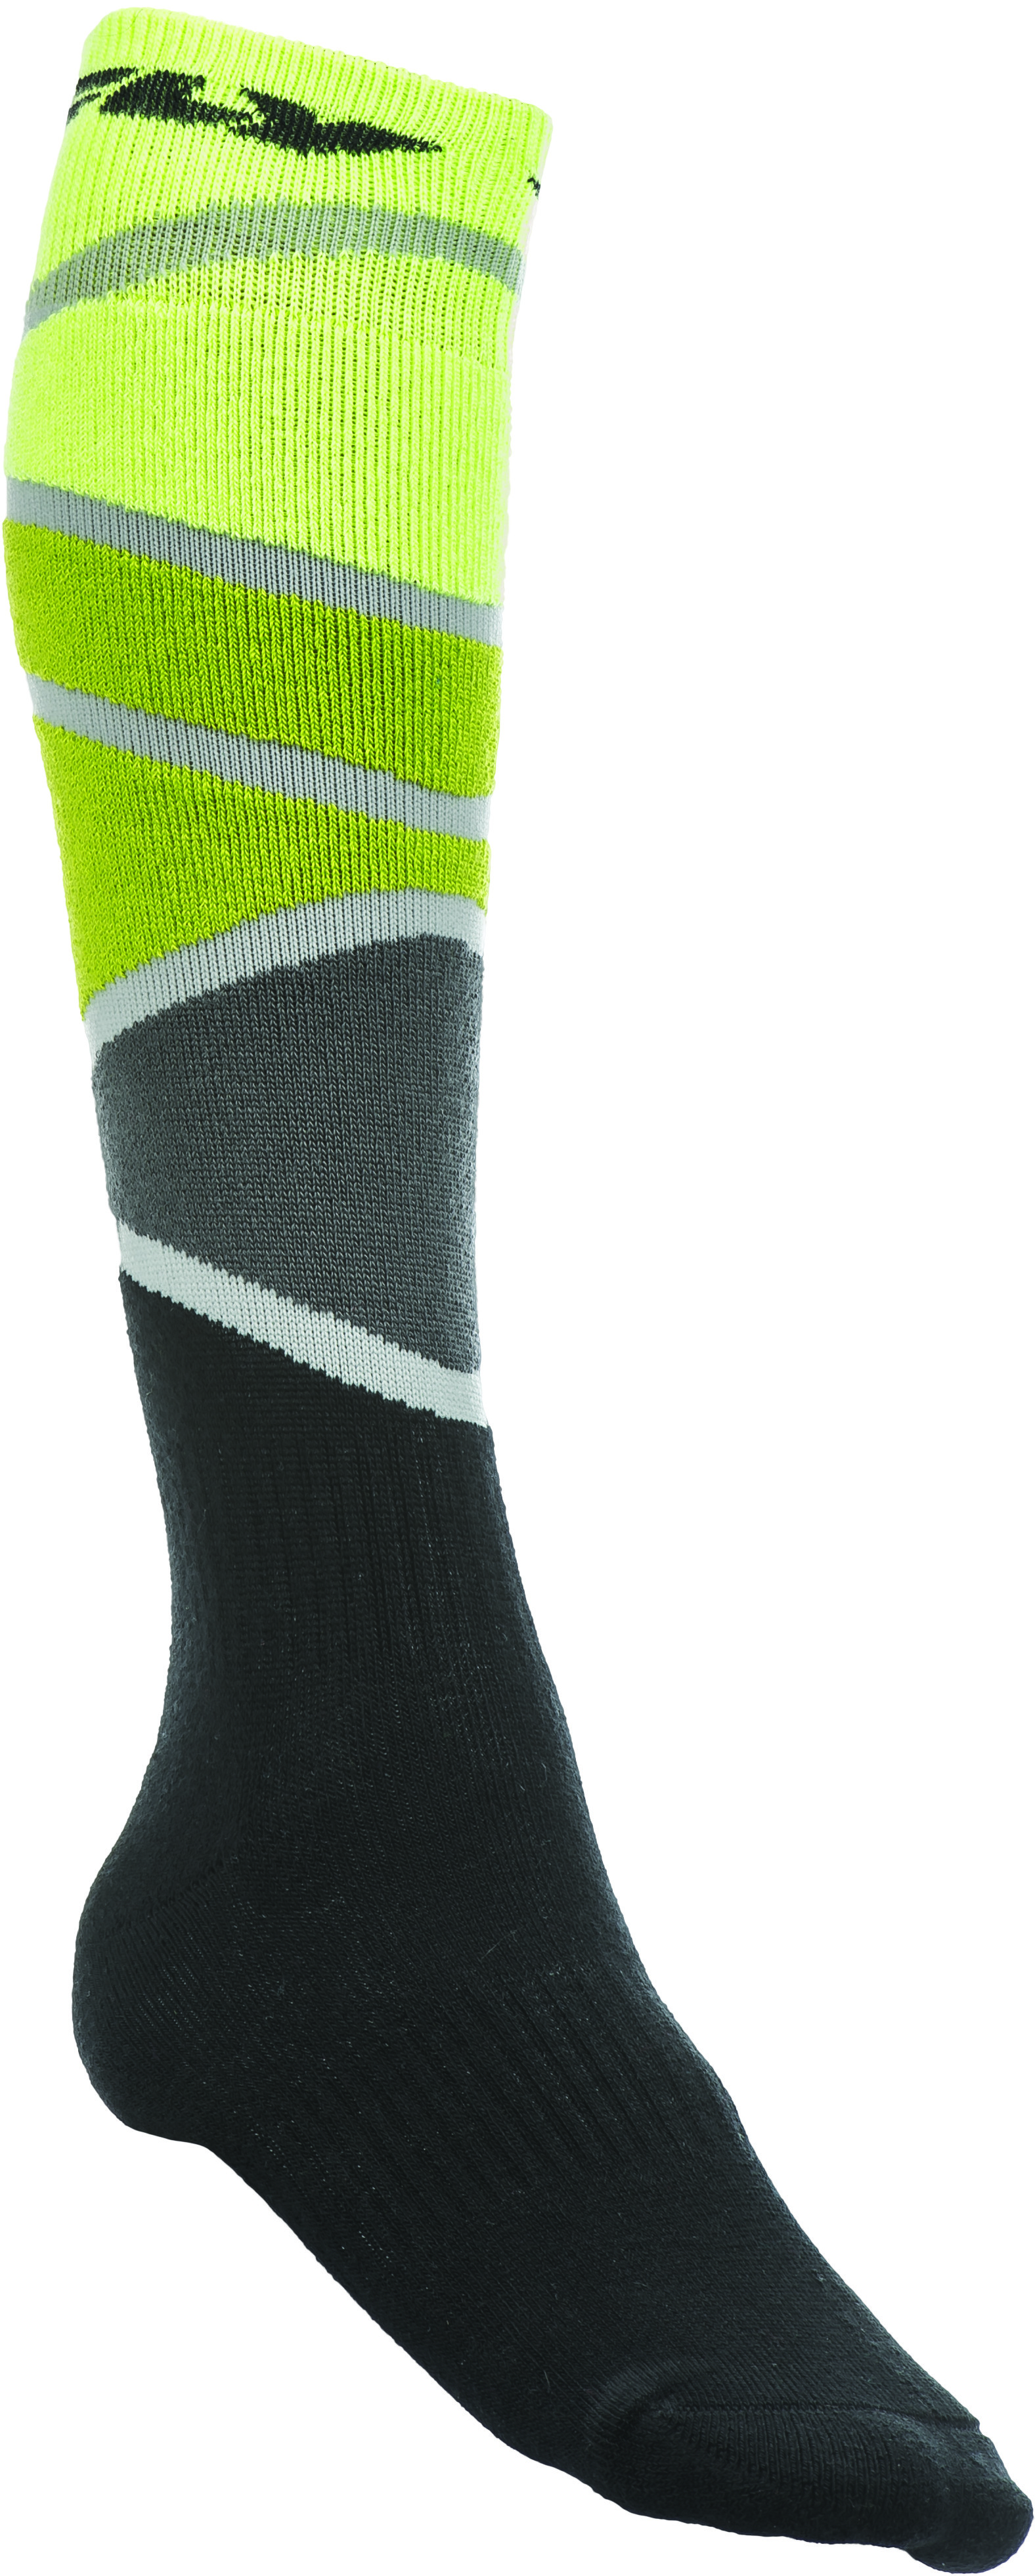 Mx Sock Thick Lime/Green/Black L/X